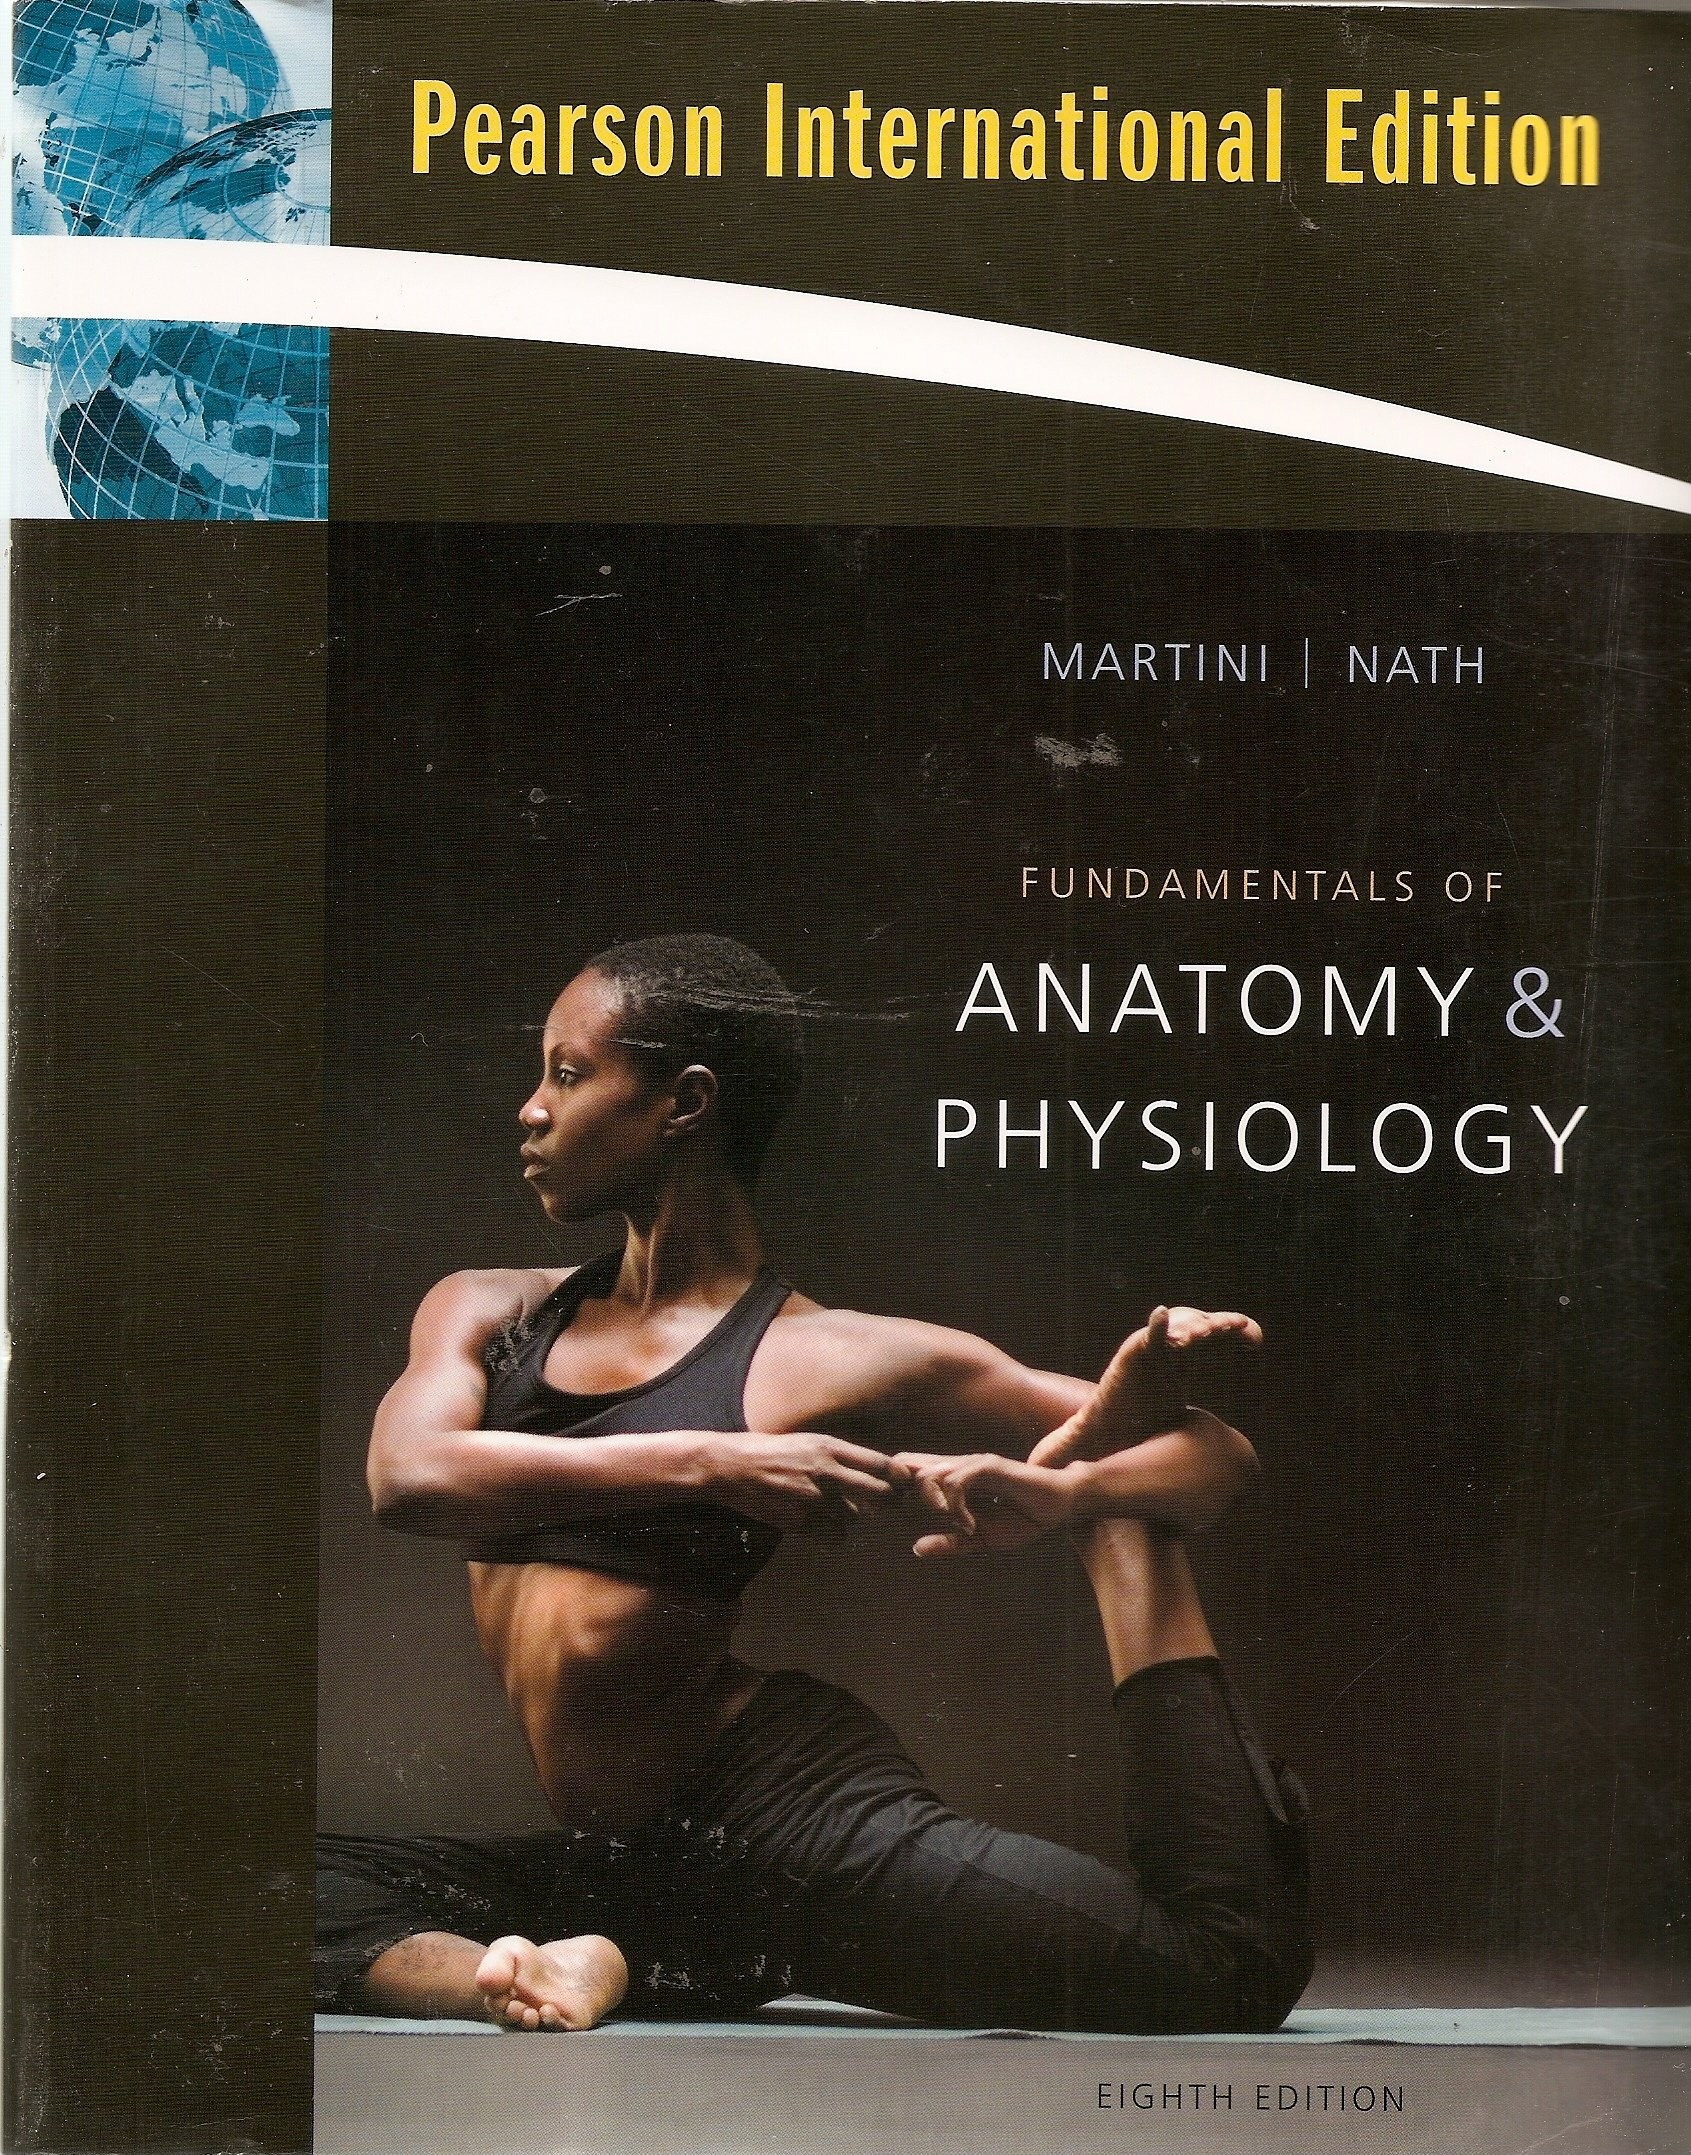 FUNDAMENTALS OF ANATOMY AND PHYSIOLOGY : EIGHTH EDITION: Amazon.co ...